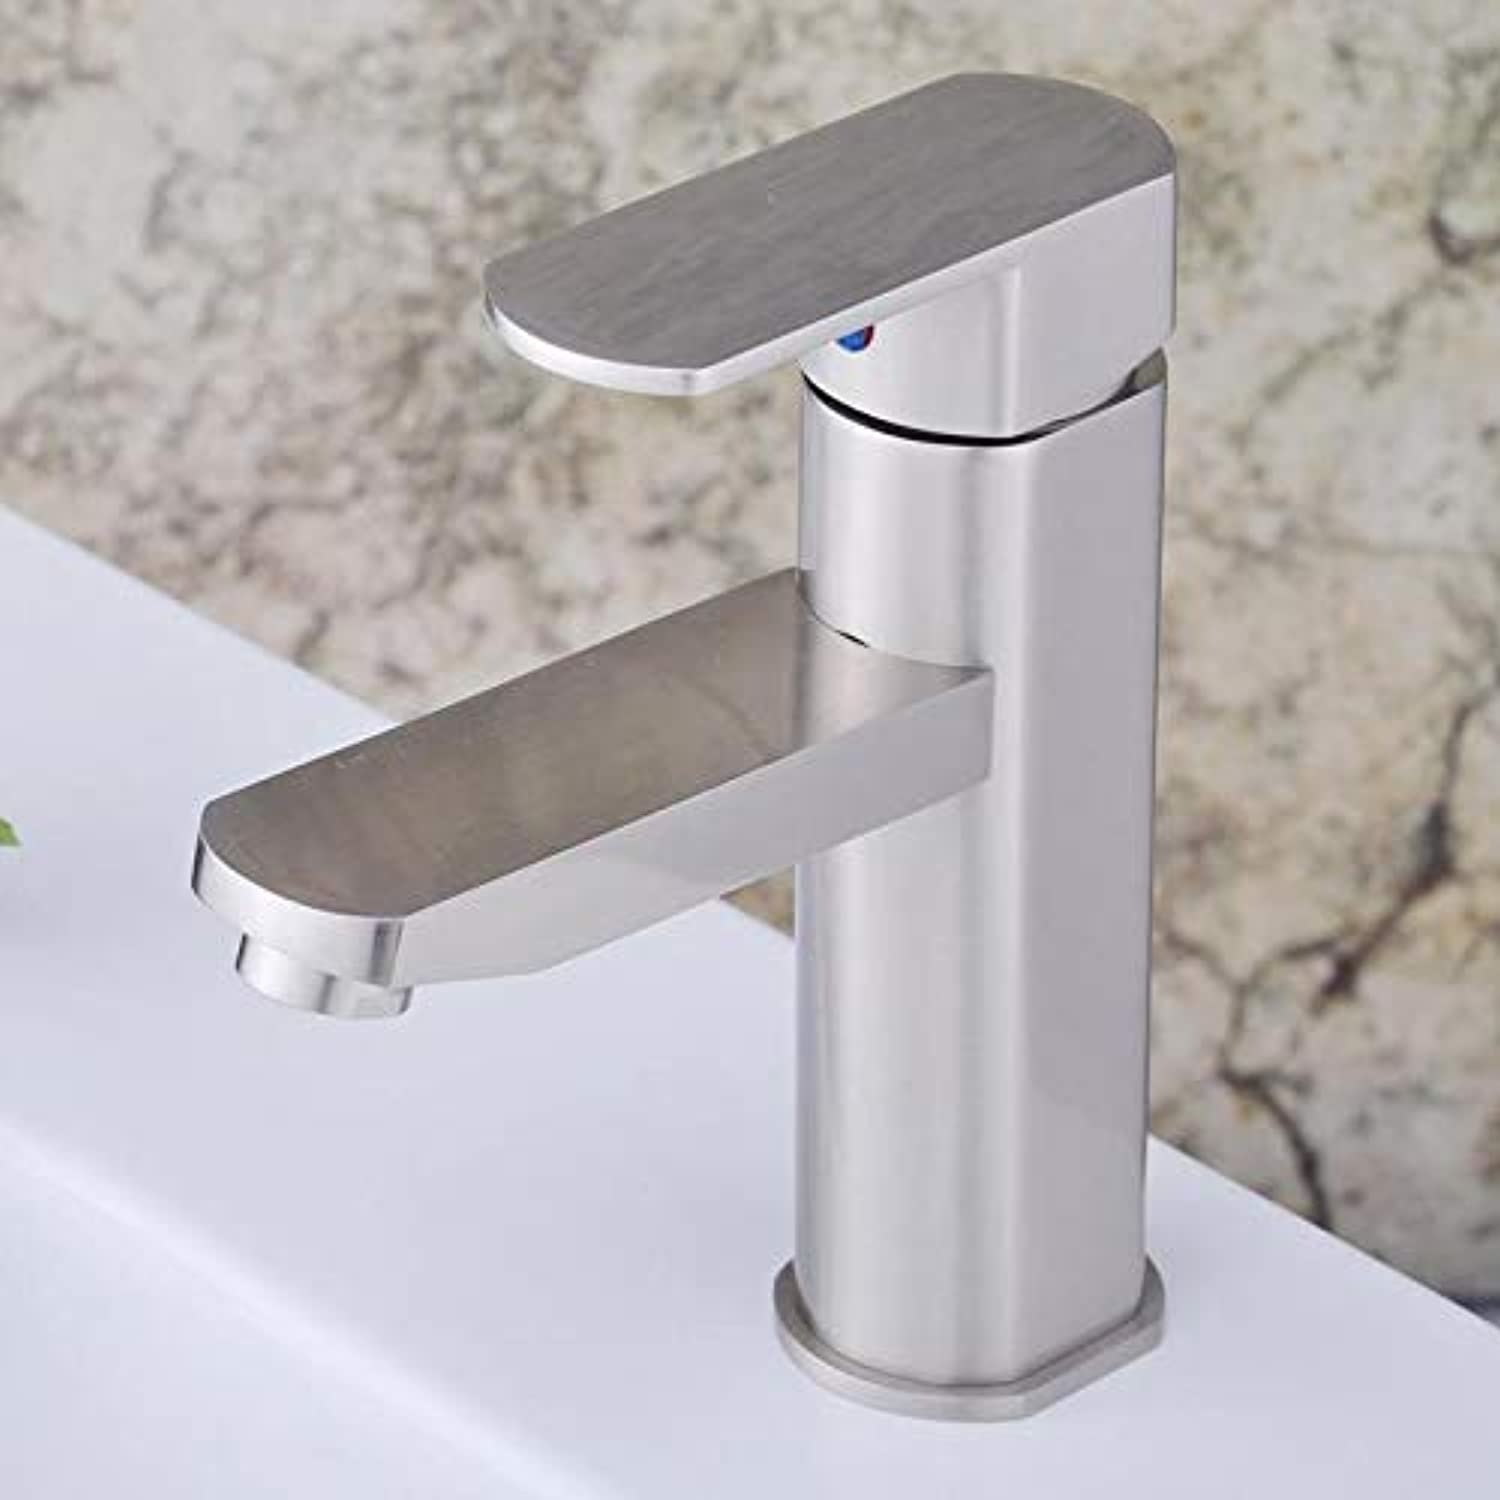 Taps Faucet Kitchen Faucet Plumbing Single Hot and Cold Water Faucet Lift Basin Faucet